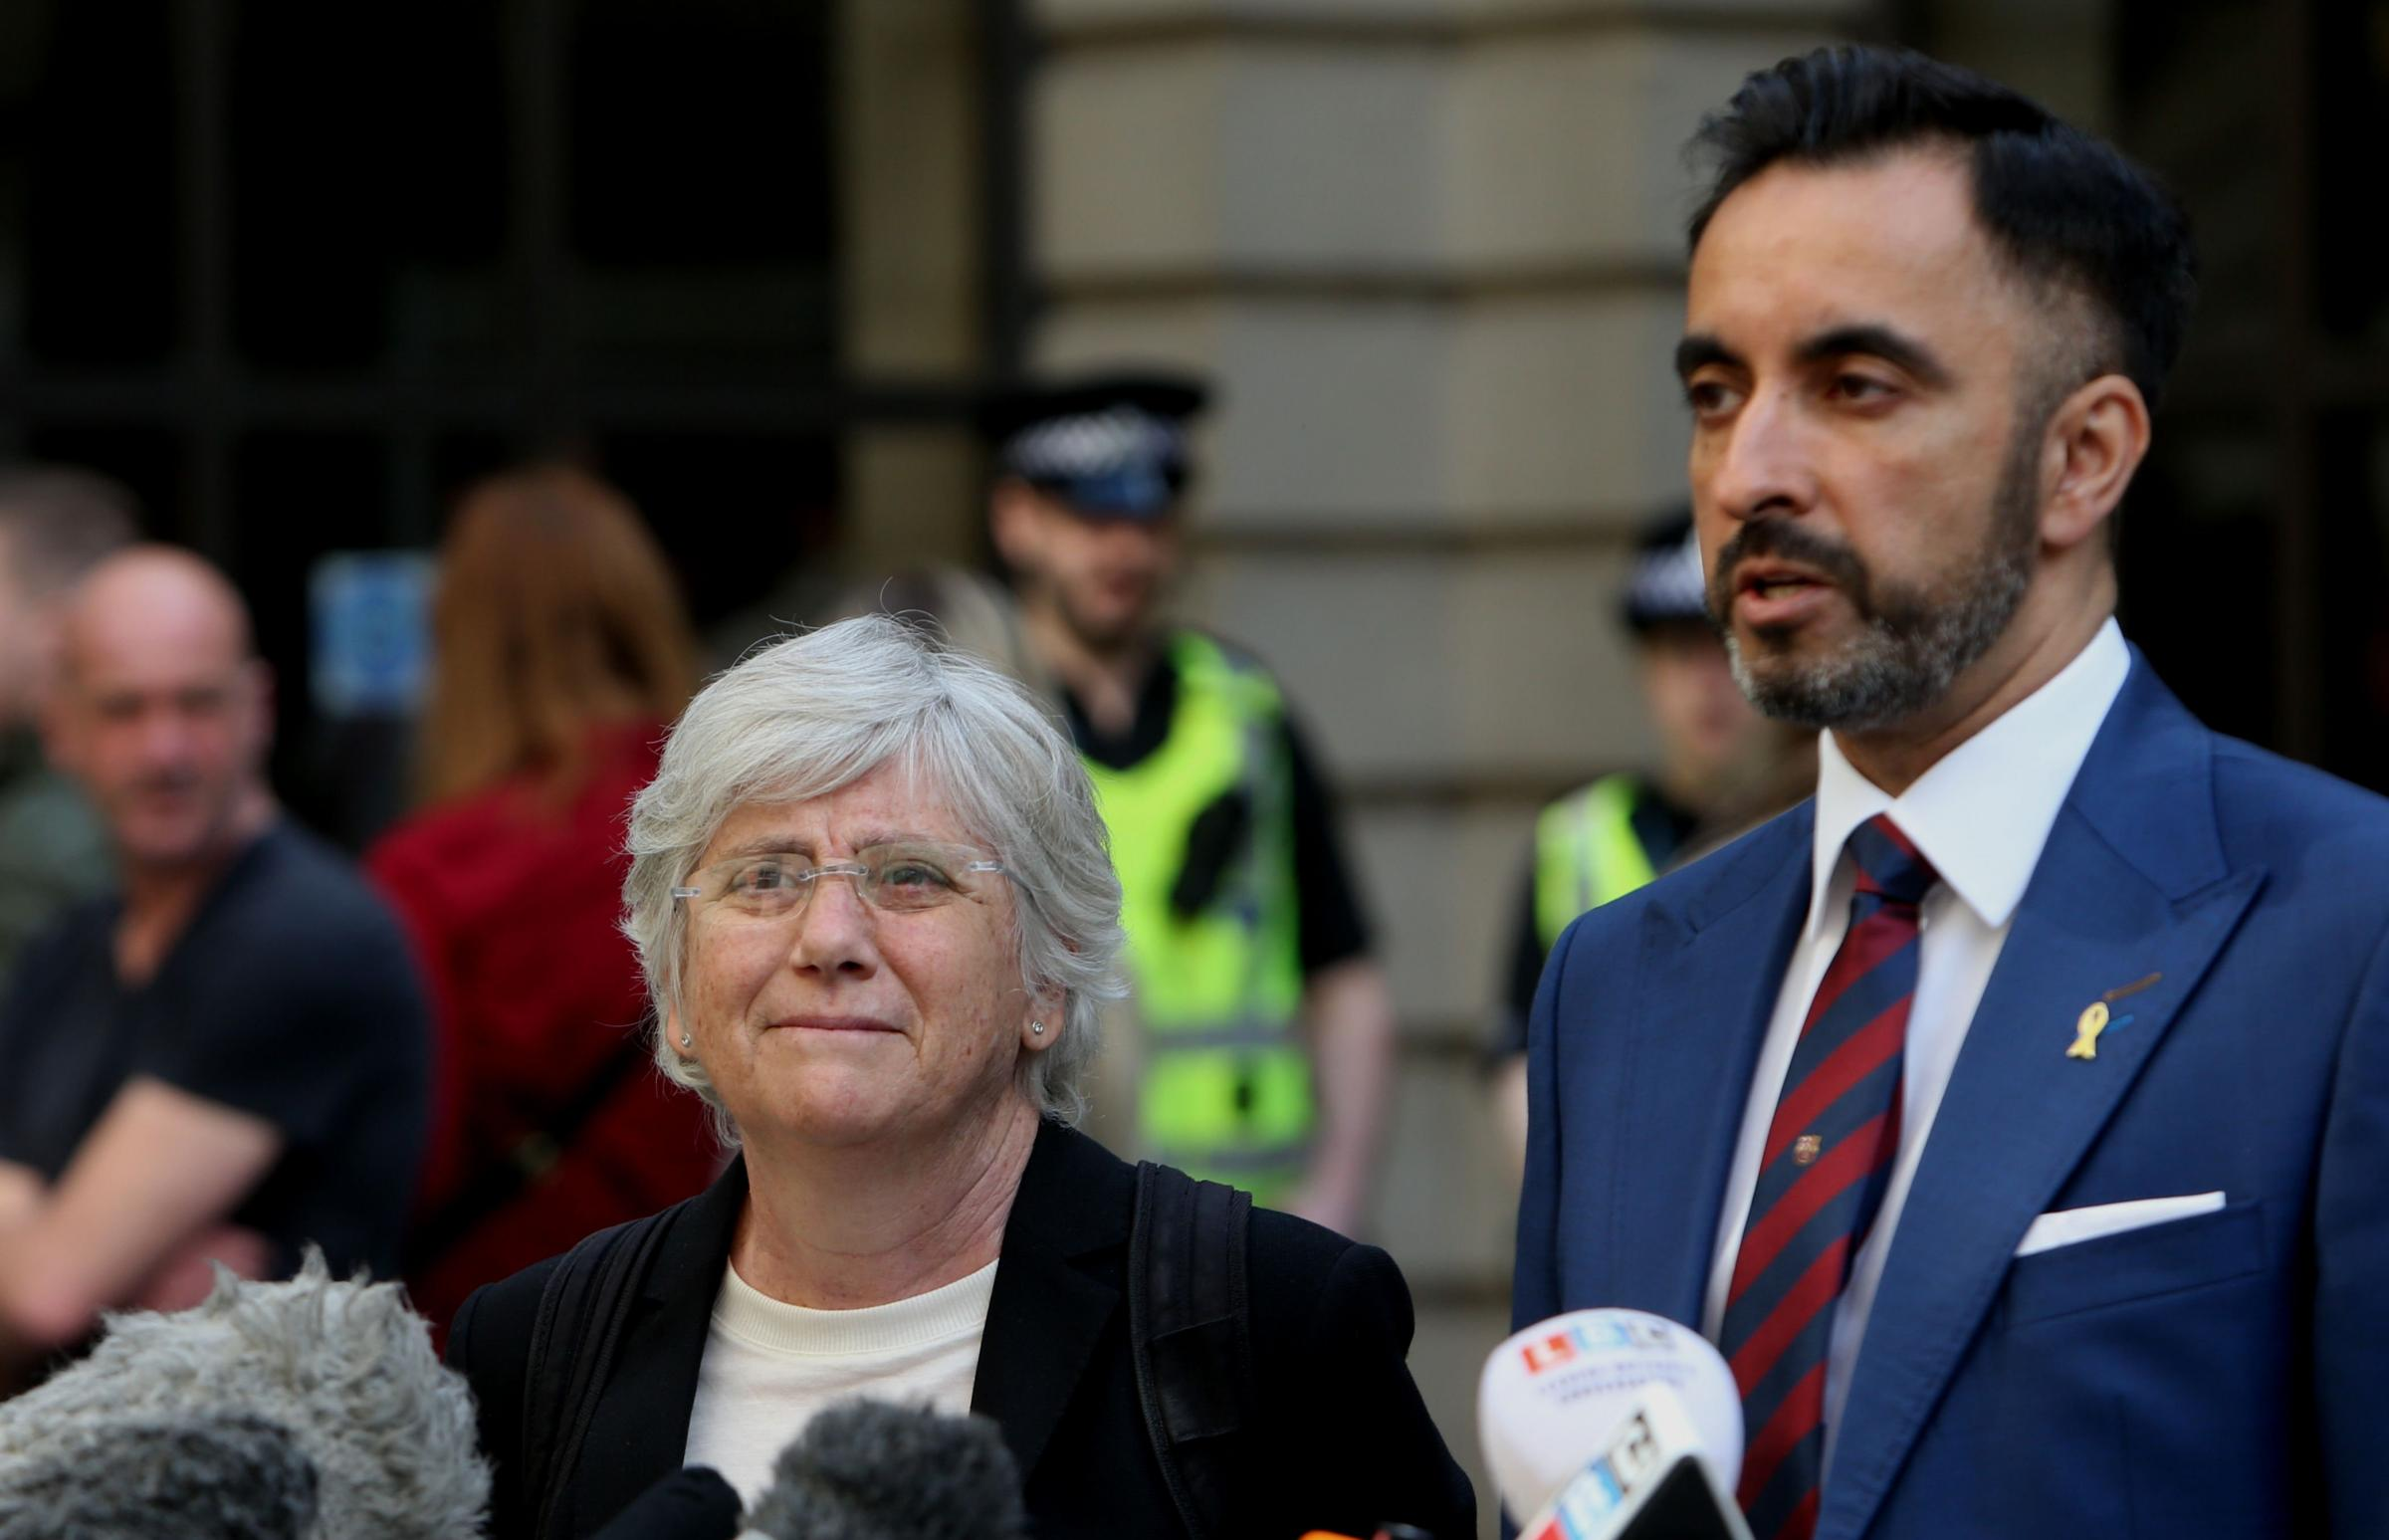 Aamer Anwar with Former Catalan education minister Clara Ponsati who he represented after the Catalonia independence referendum